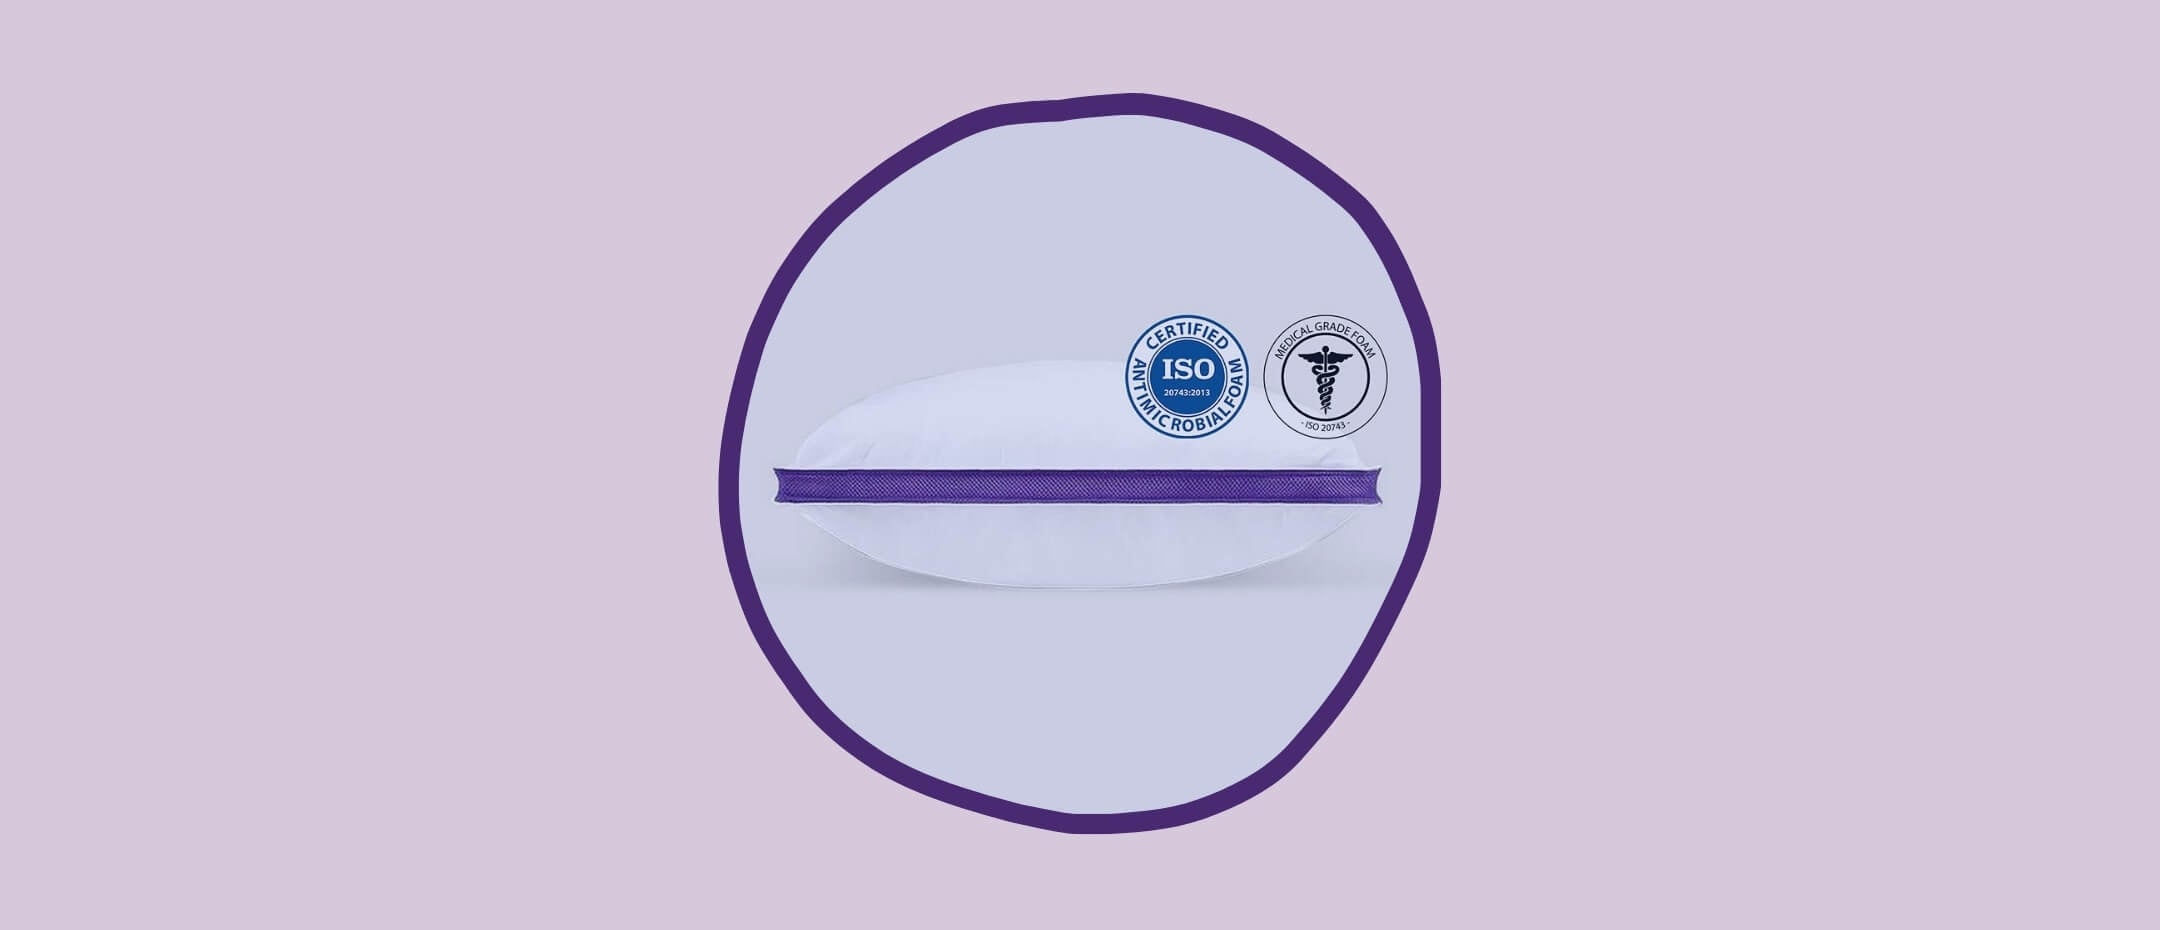 The antimicrobial certified Polysleep pillow